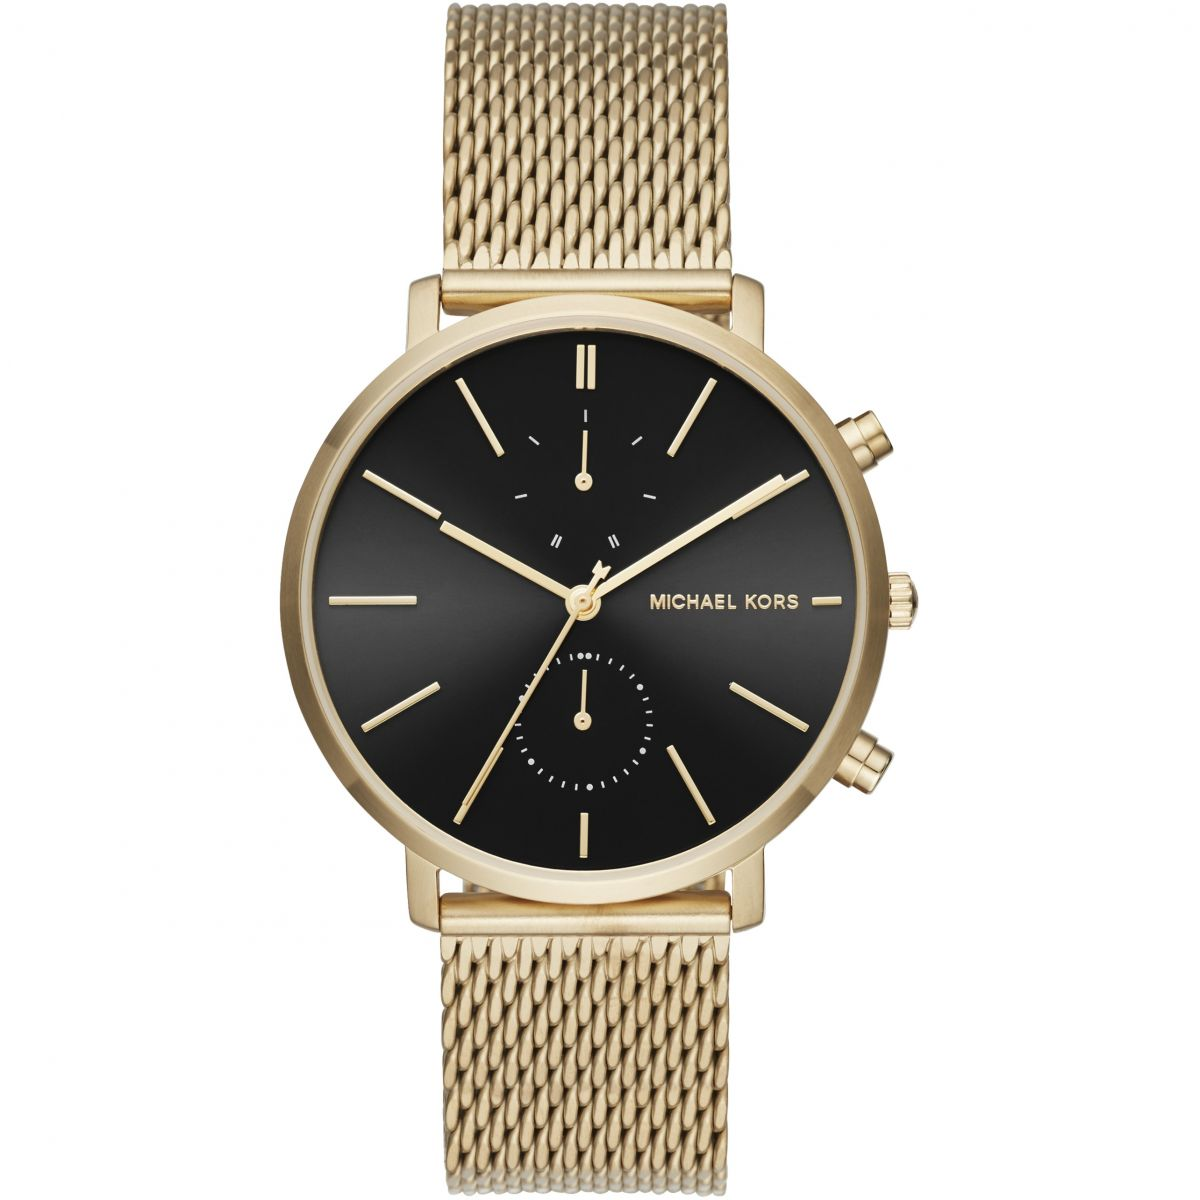 montre michael kors or homme